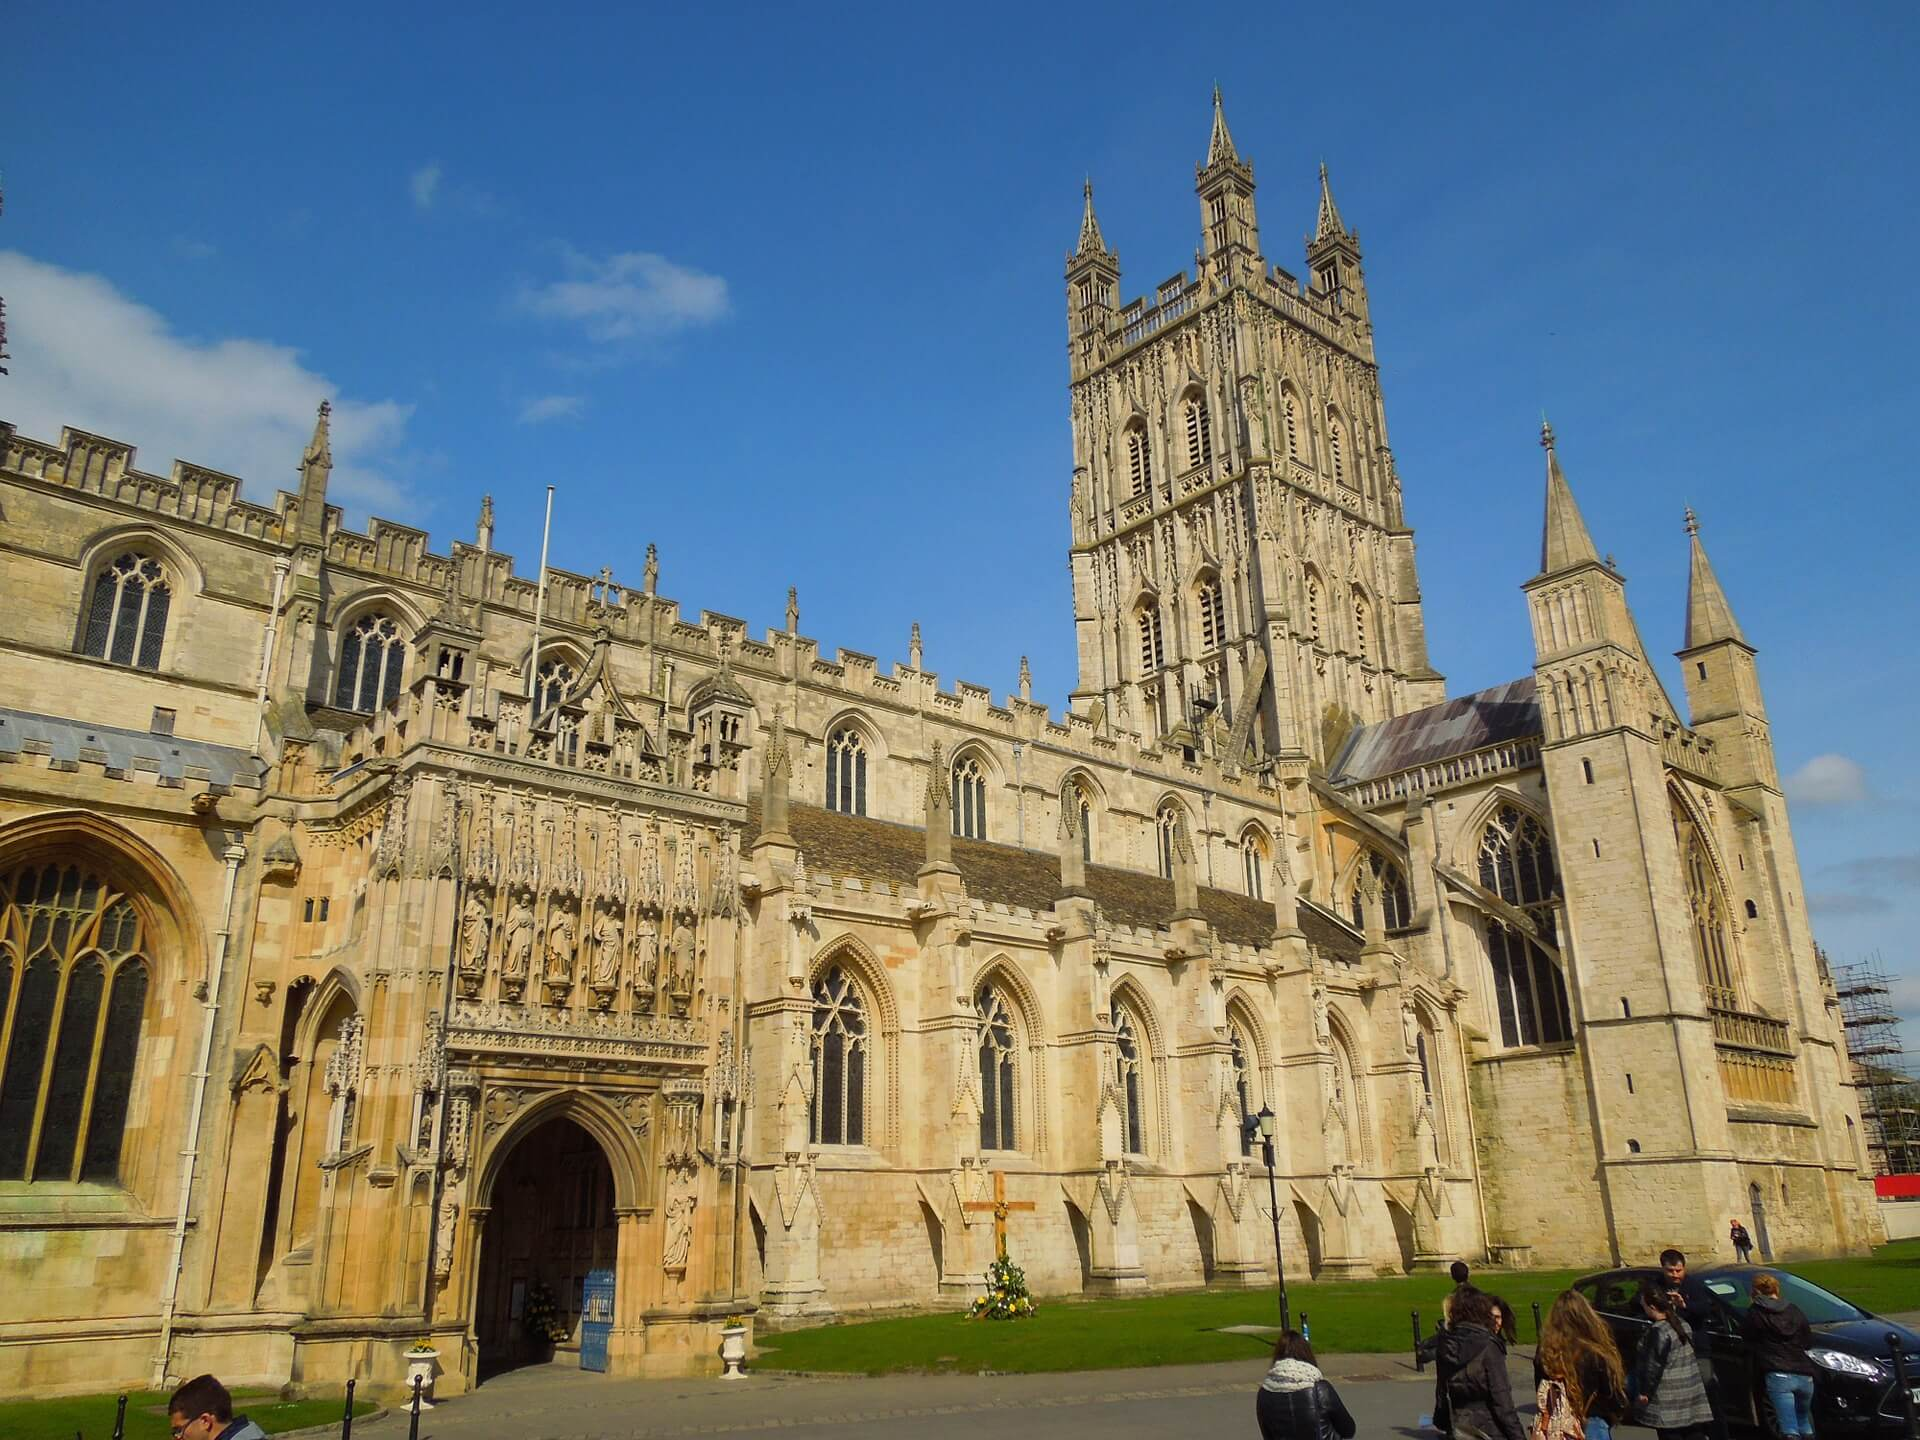 Church of England - Gloucester Cathedral